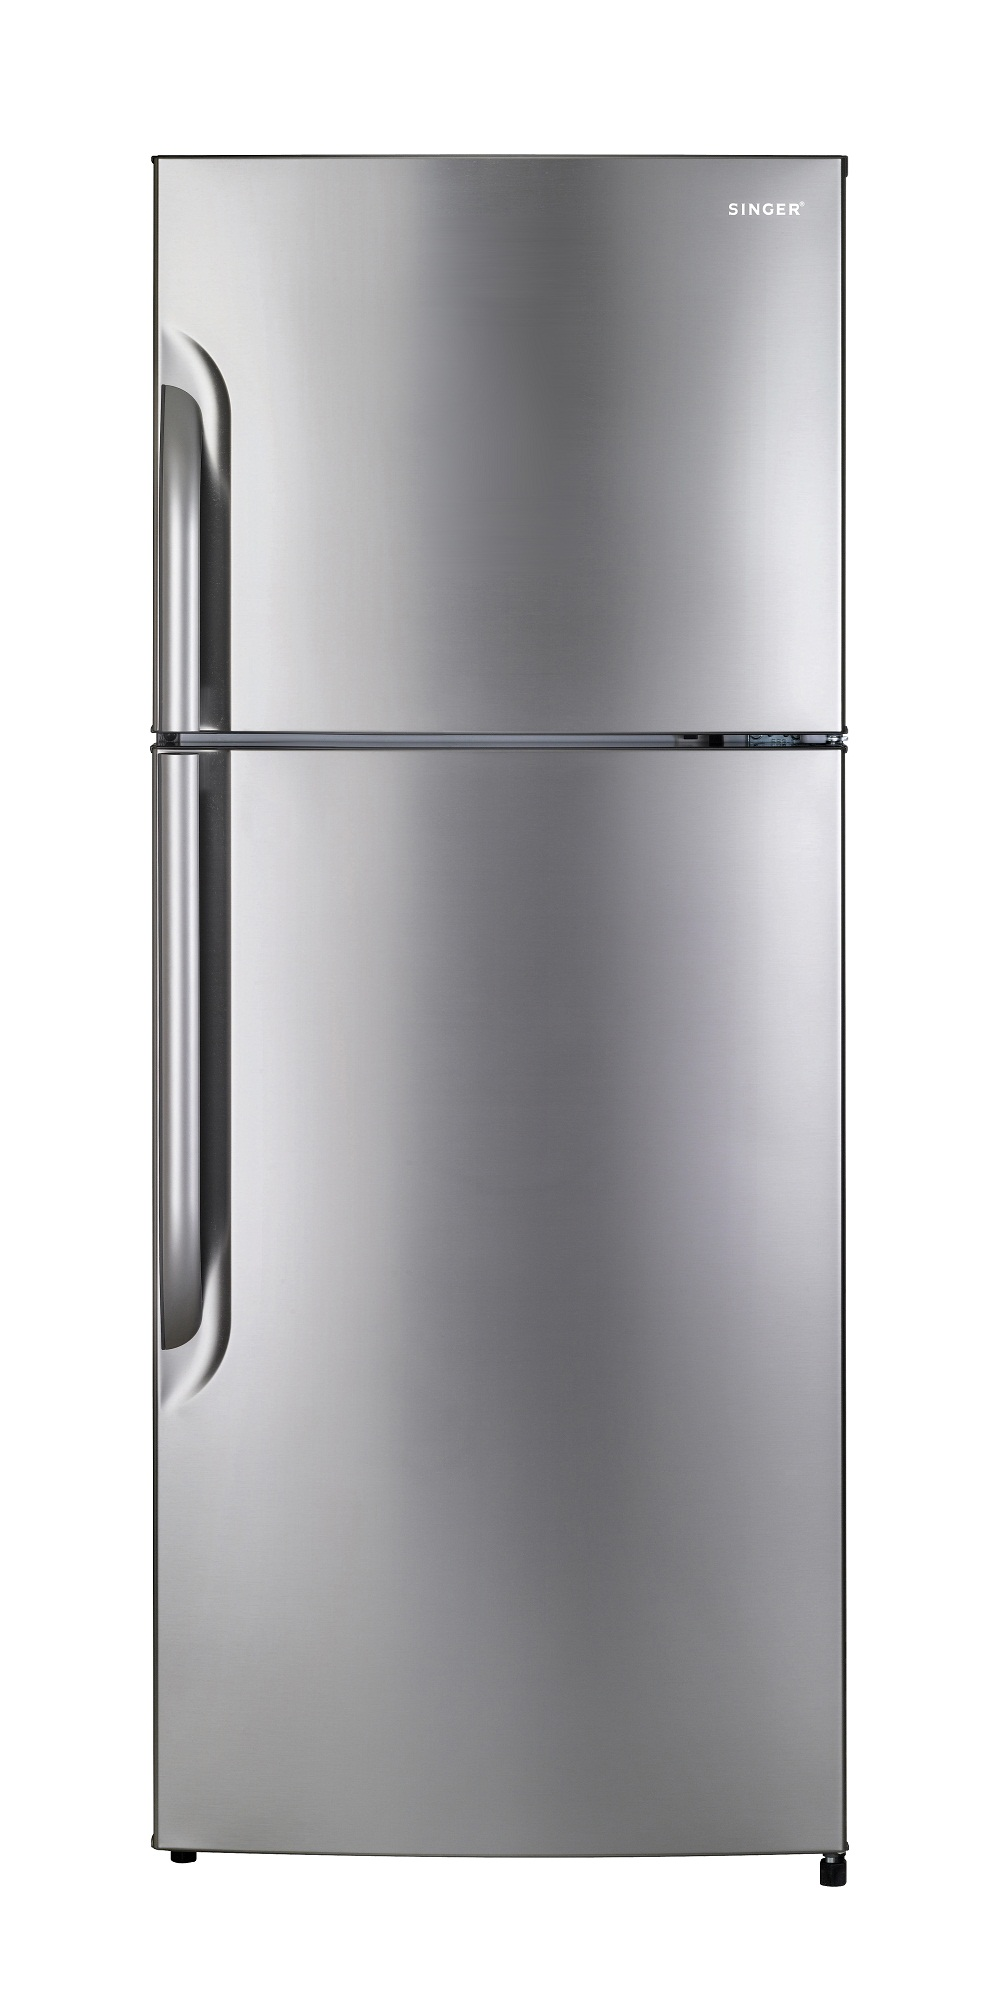 Singer Refrigerator Wiring Diagram Electrical Diagrams Ge Profile Schematic Fridge Page 2 Malaysia 387l Door Frost Free